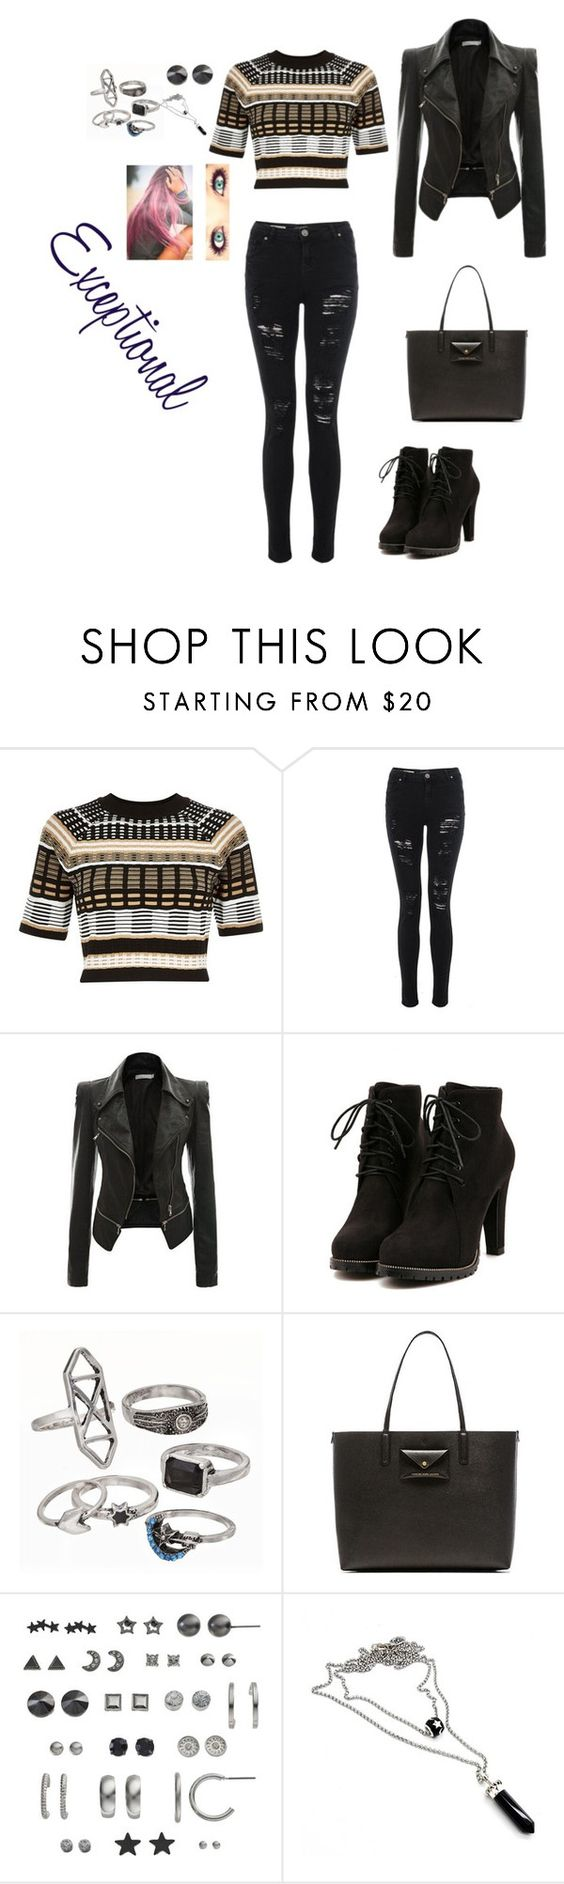 """""""Exceptional"""" by avalongreen-12 ❤ liked on Polyvore featuring River Island, Mudd, Marc by Marc Jacobs, SO, women's clothing, women, female, woman, misses and juniors"""